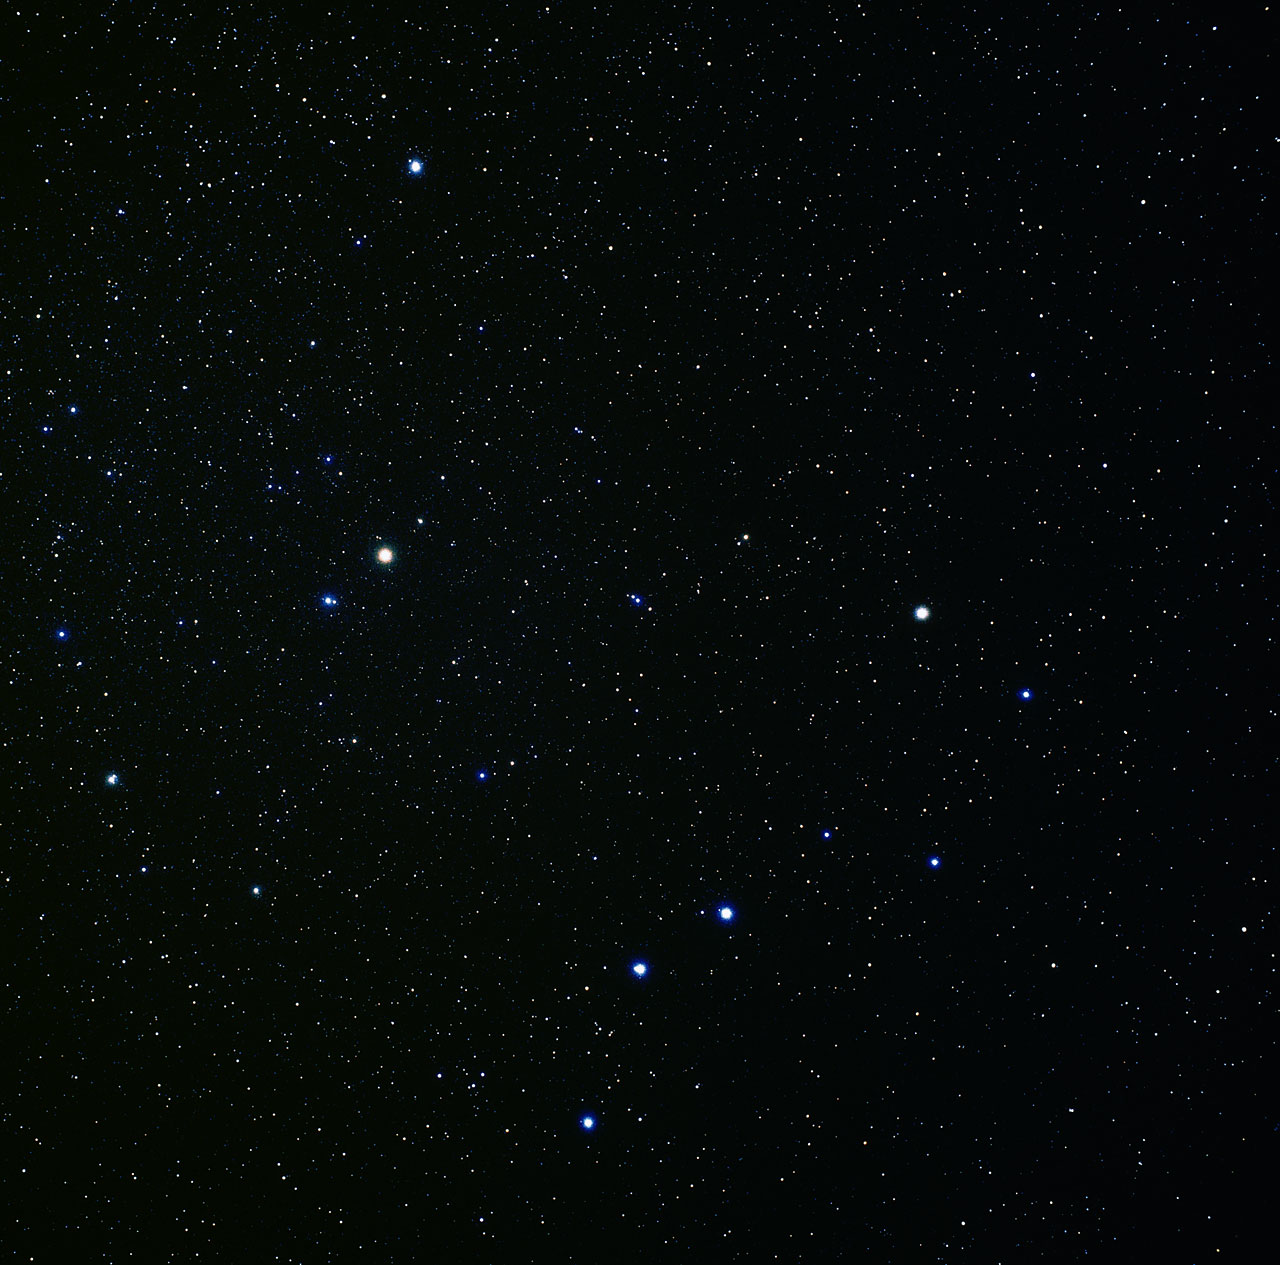 Wide Field Image Of Ursa Major And Ursa Minor Ground